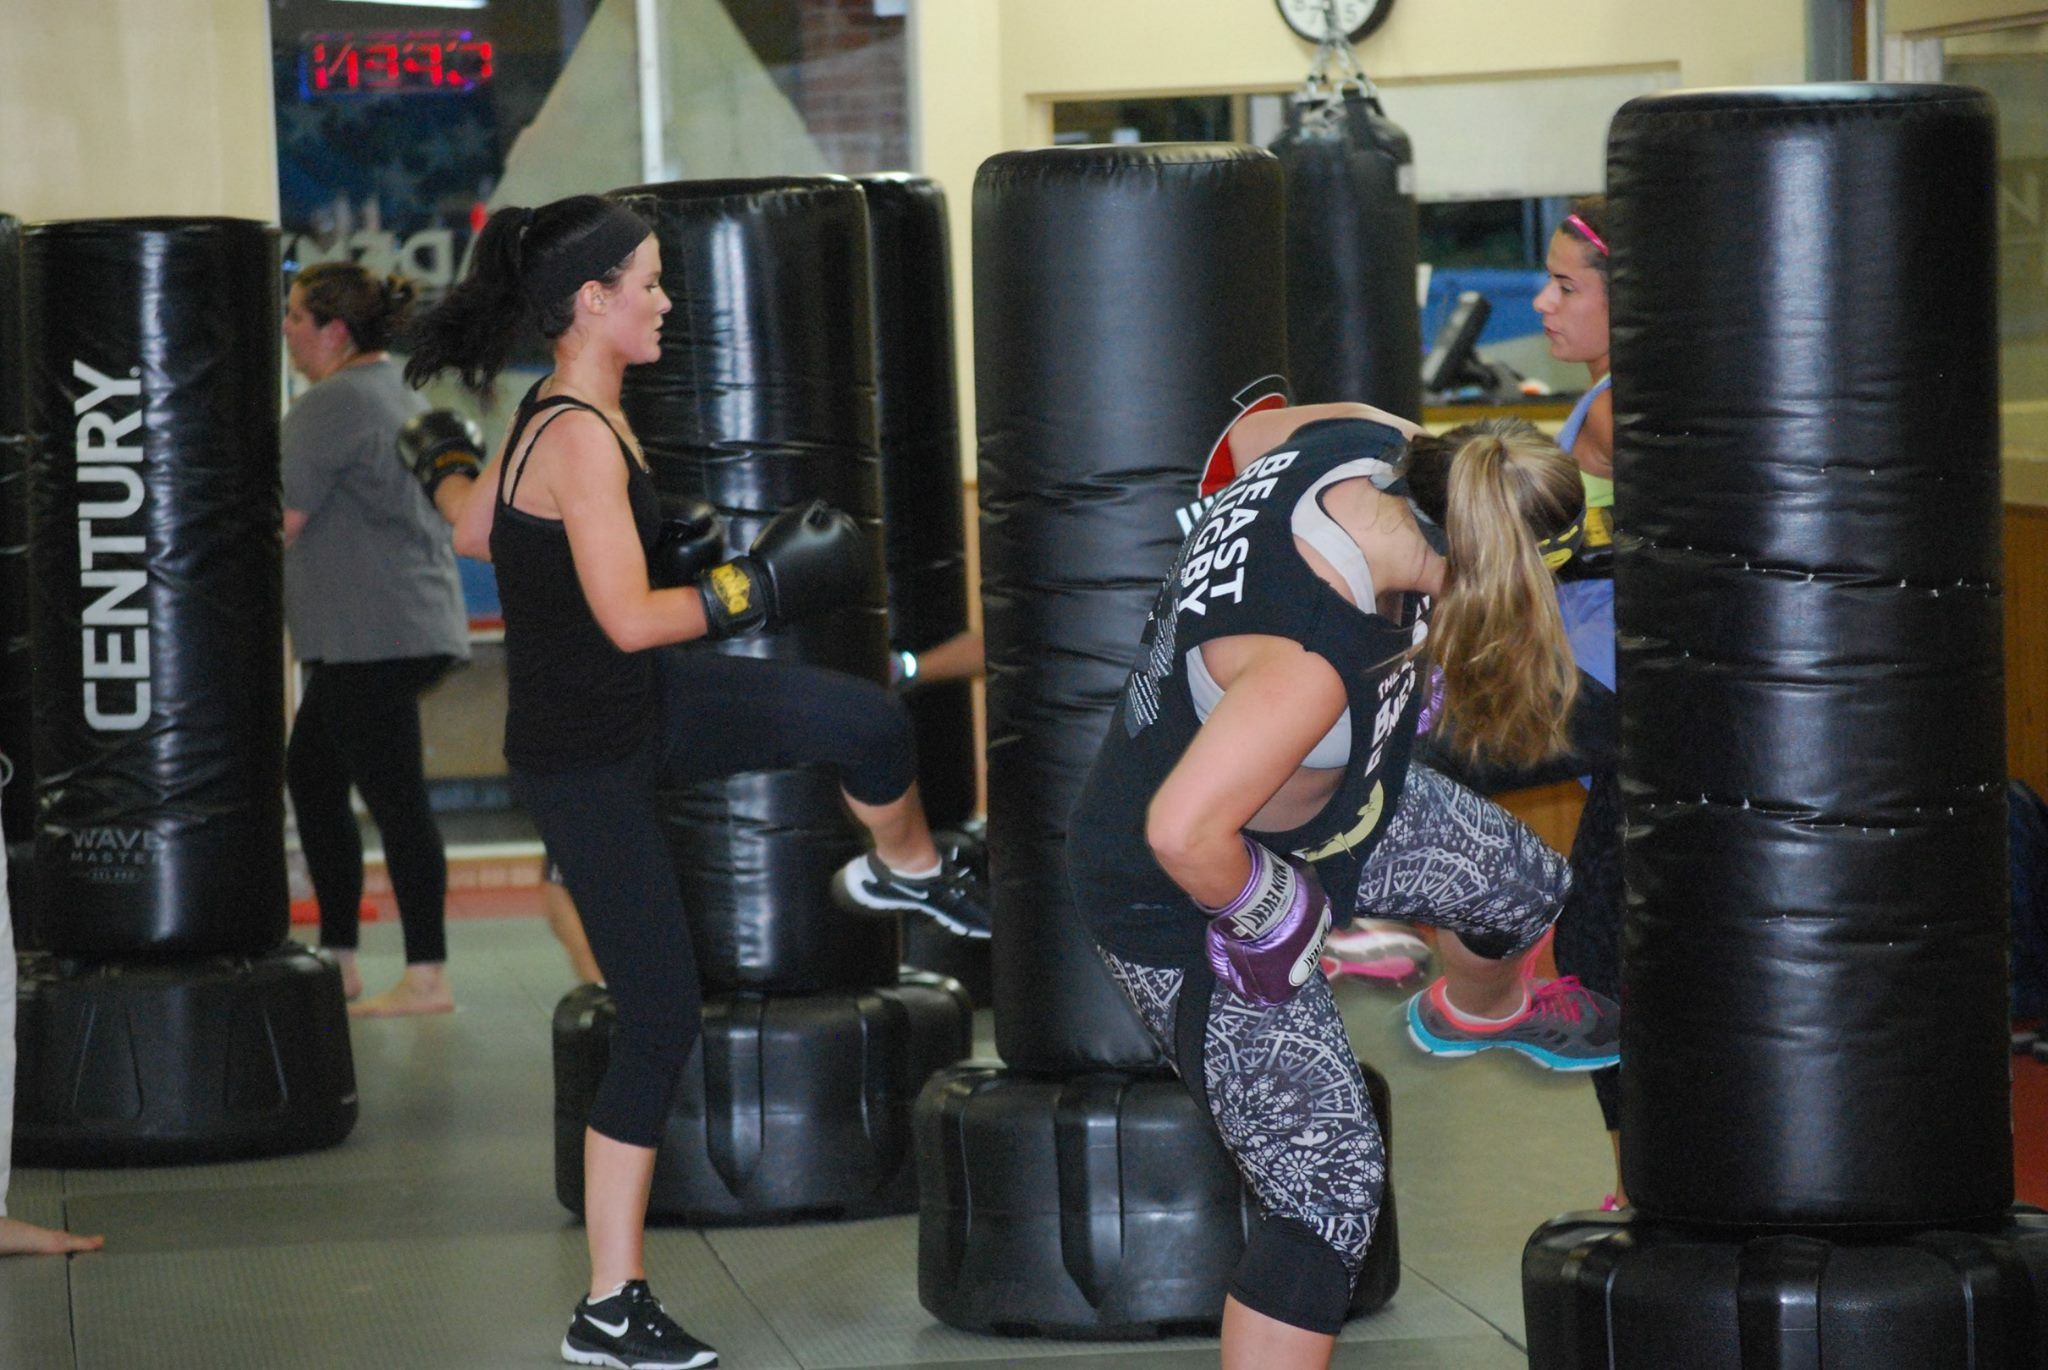 Fitness Kickboxing in East Northport